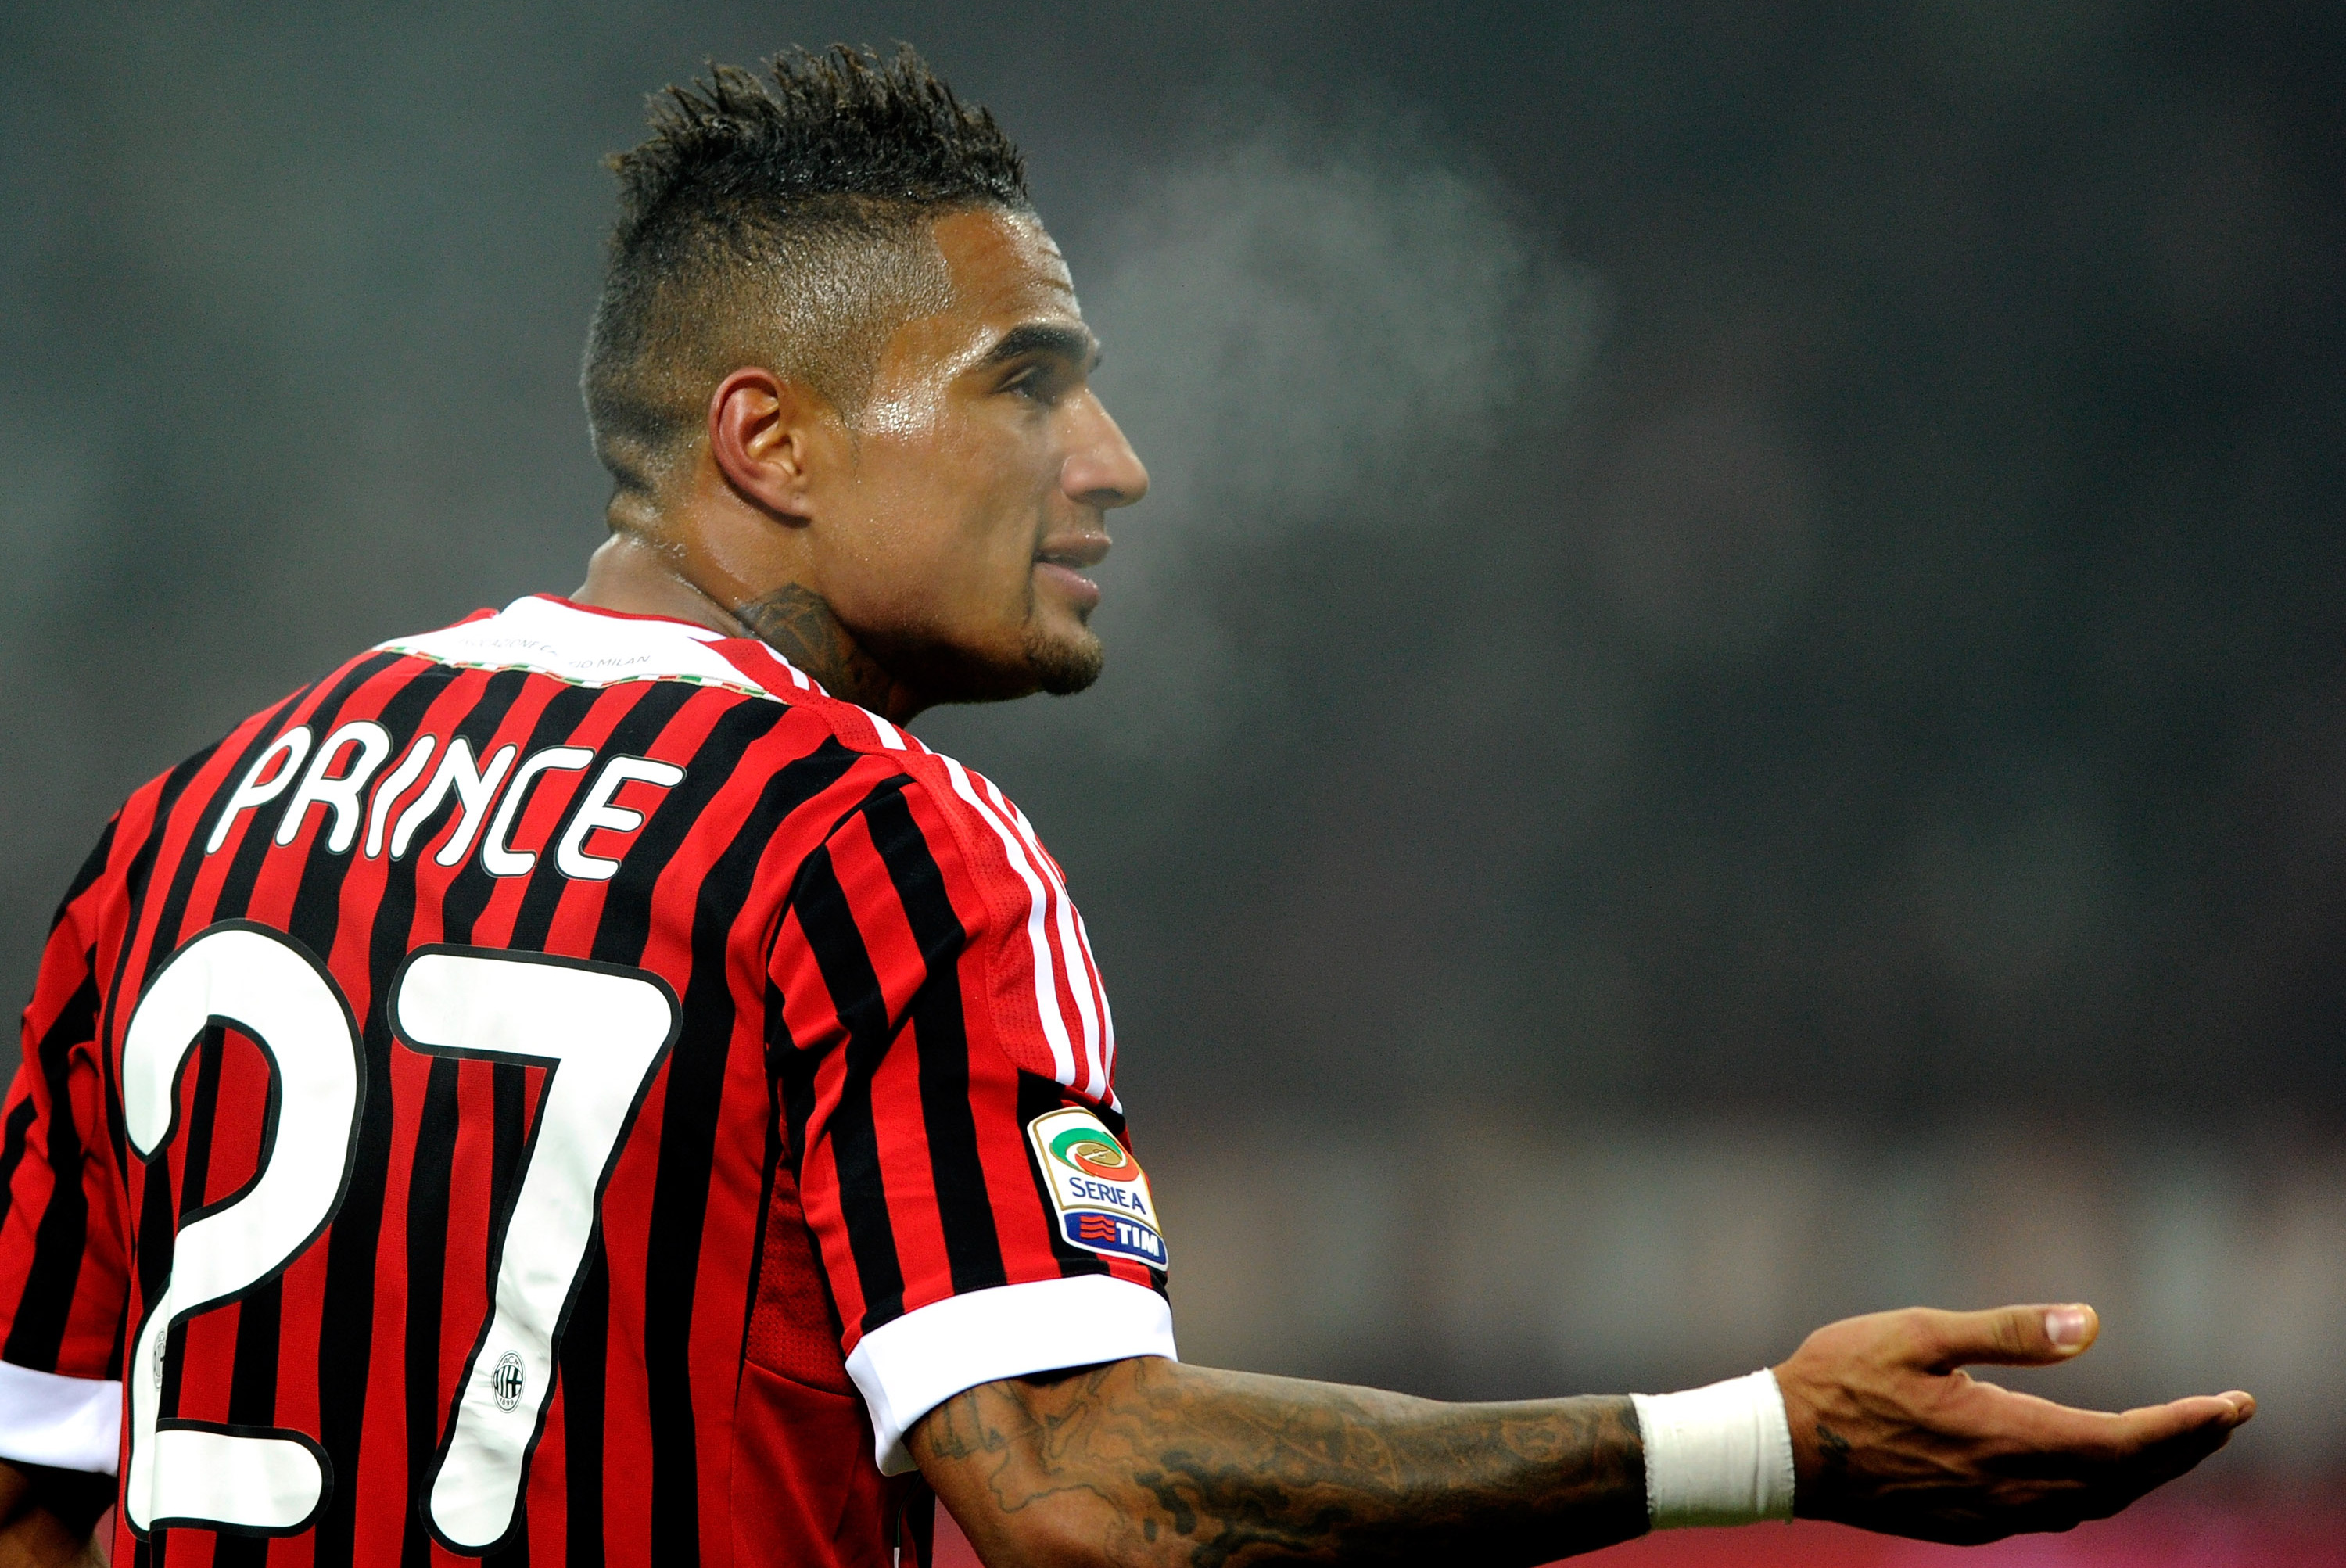 Kevin-Prince Boateng: AC Milan Star Allegedly Sidelined by Bedroom Exploits | Bleacher Report | Latest News, Videos and Highlights